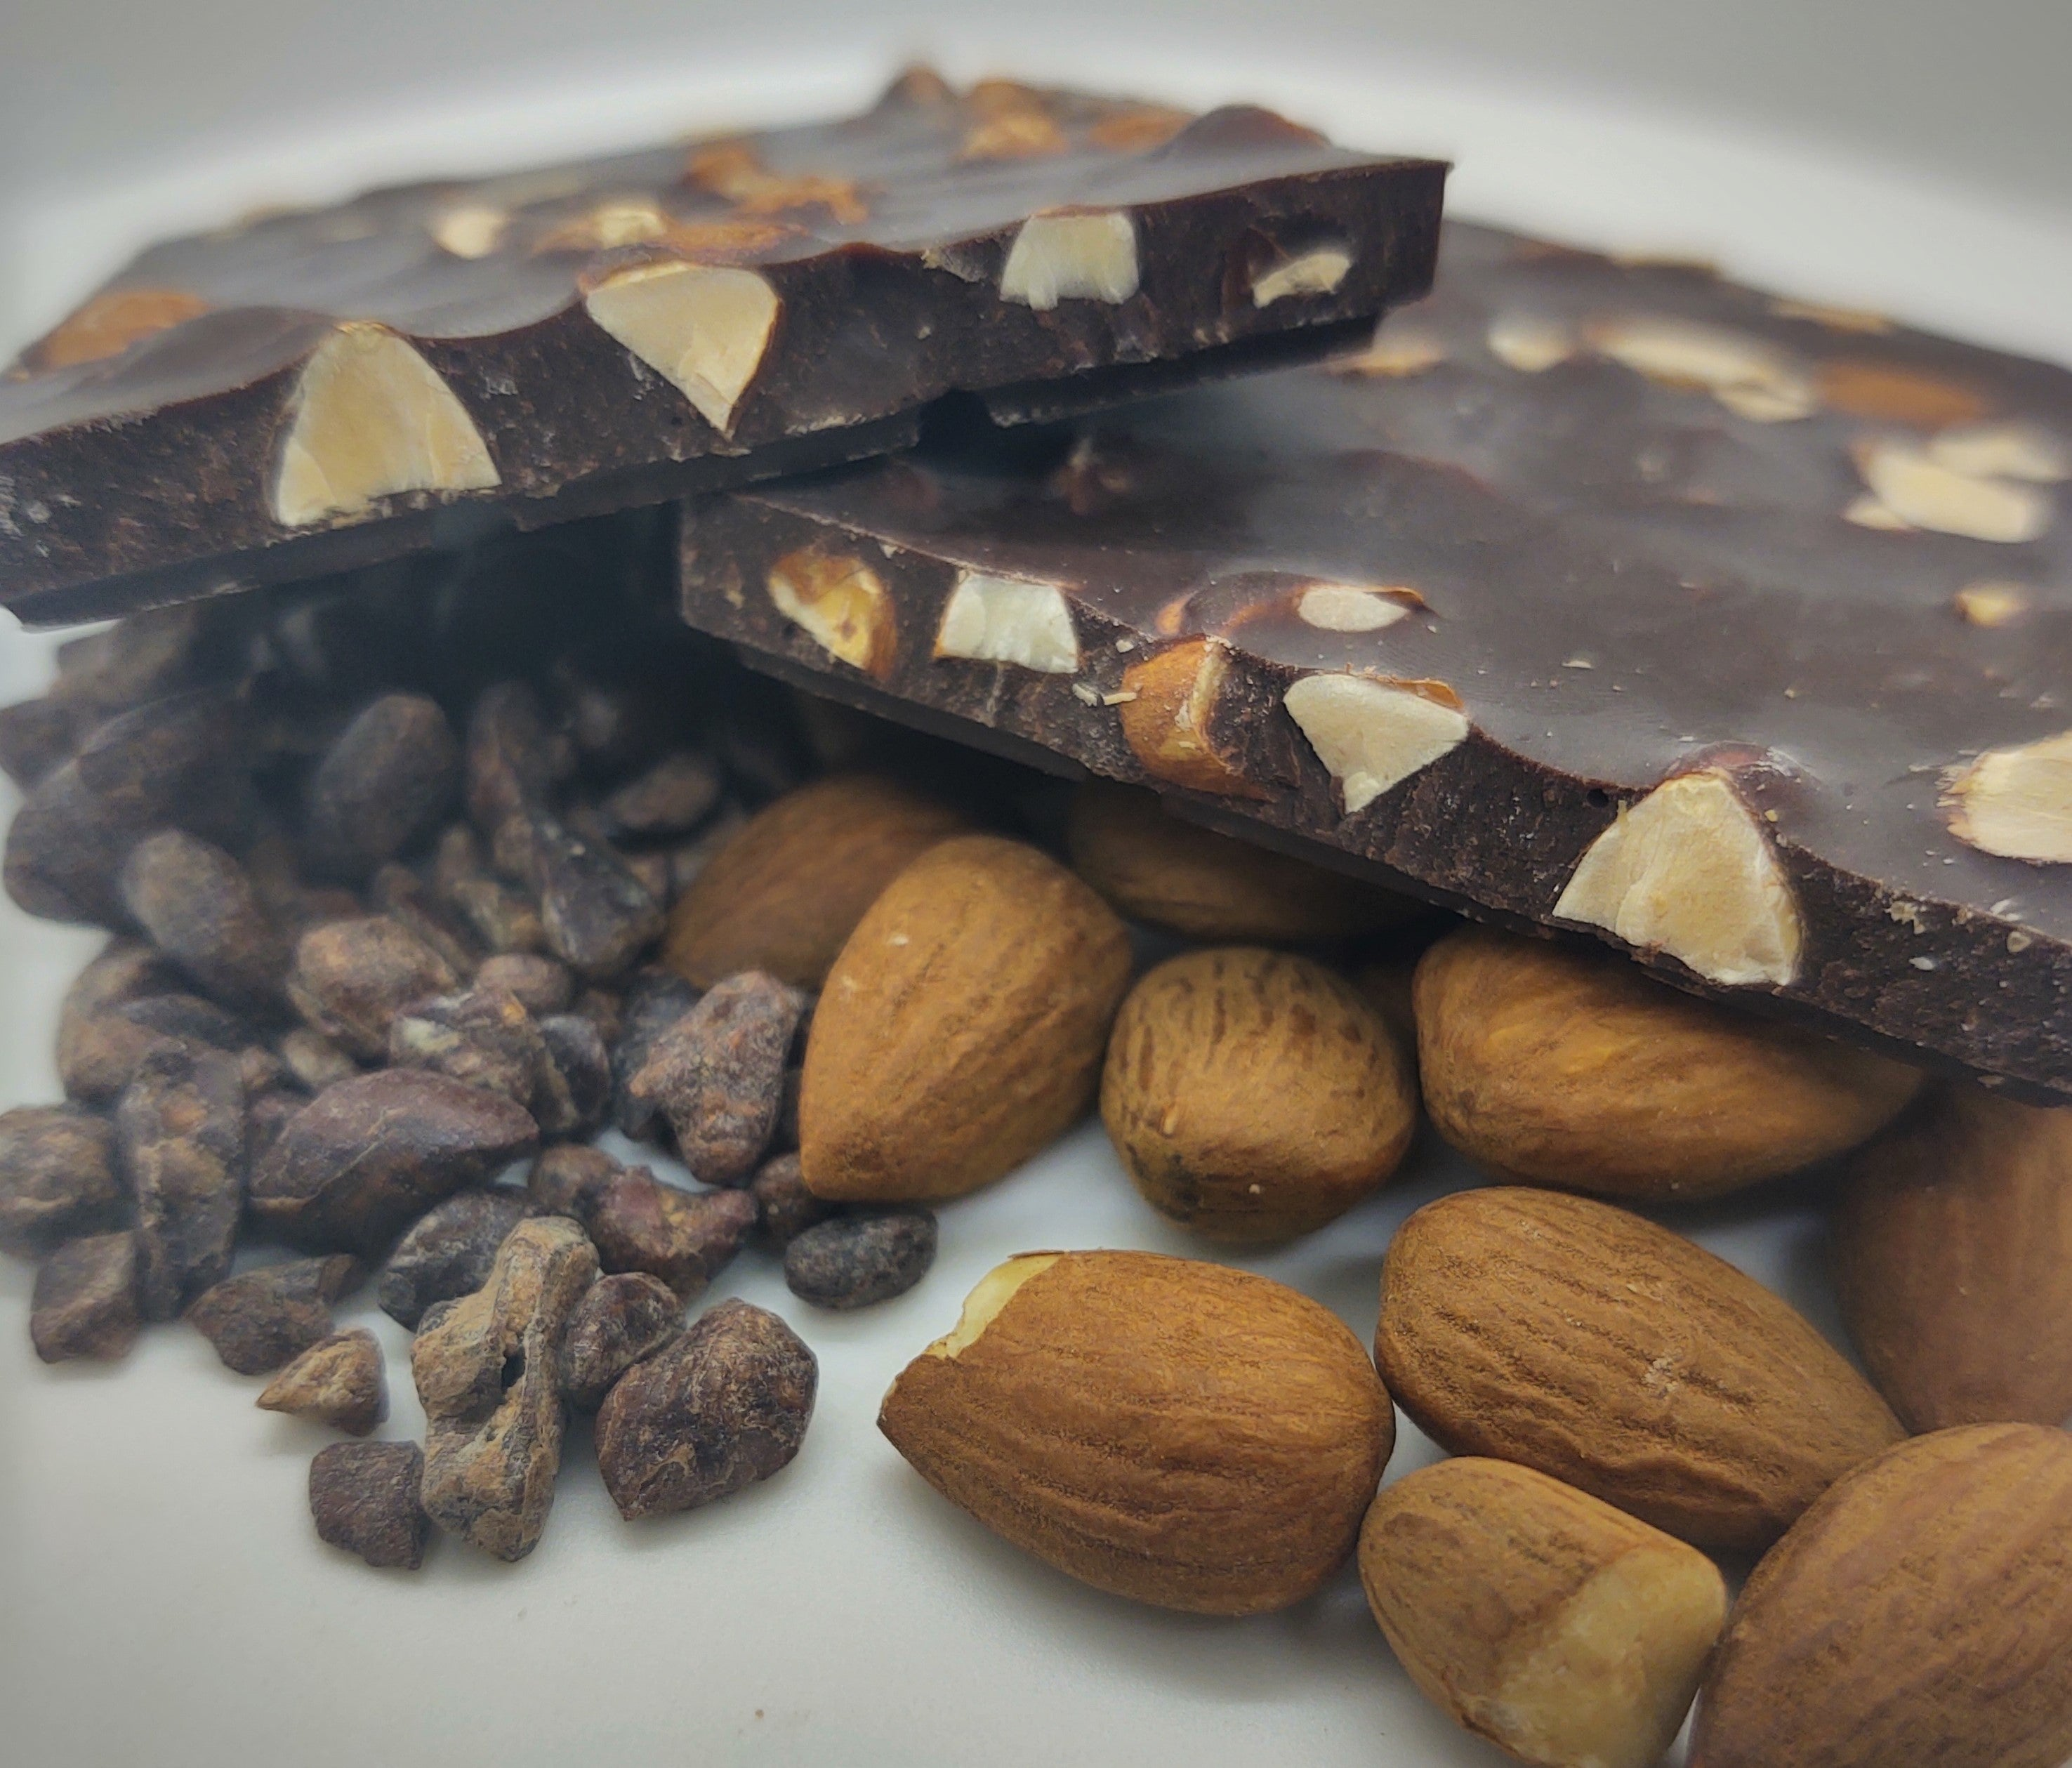 Pictured: solid dark chocolate bar with almonds. The bar is mounted by cocoa nibs and whole, roasted almonds